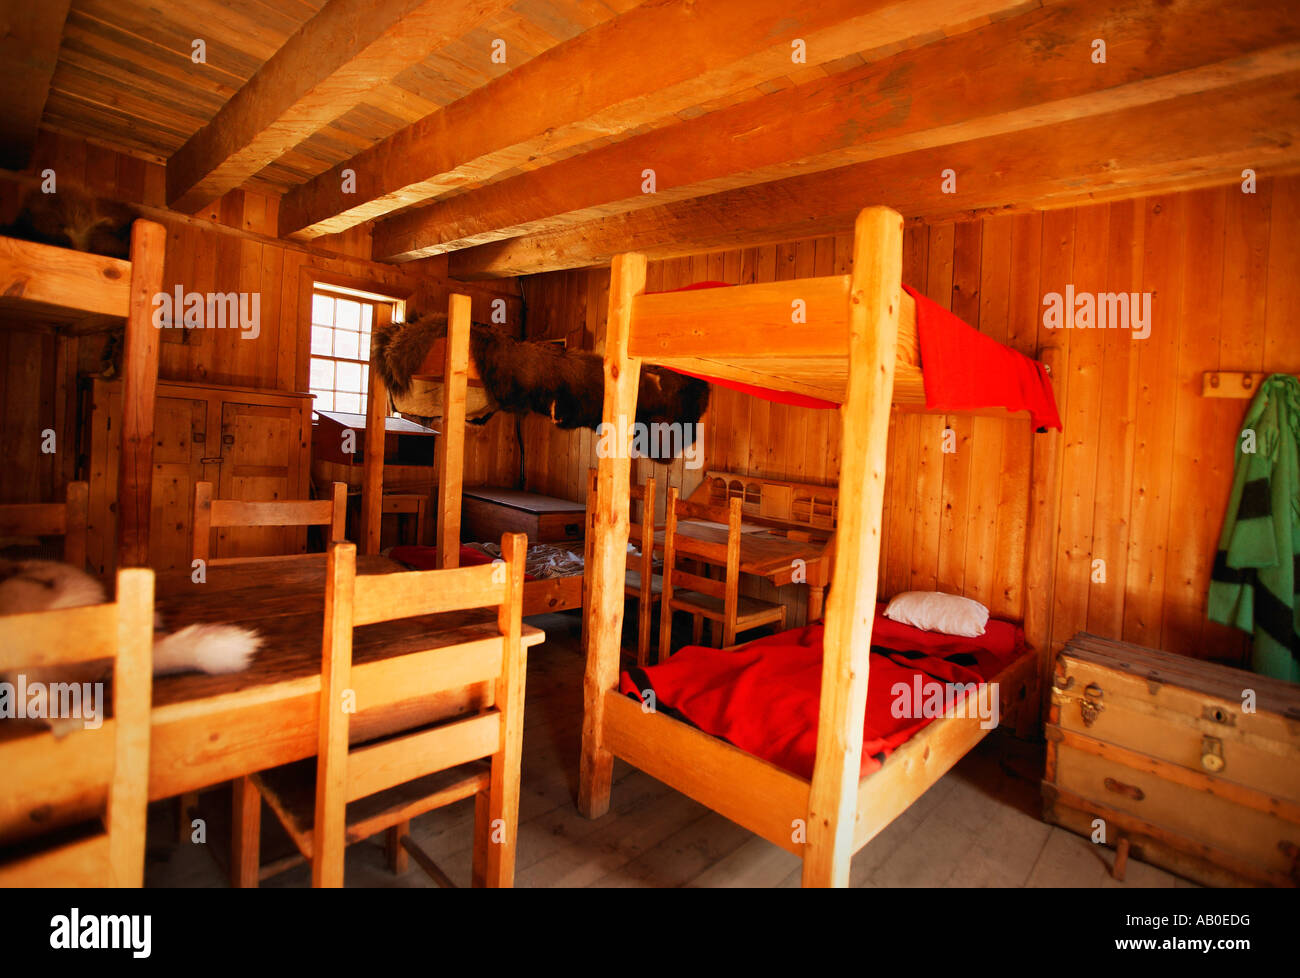 Bunk beds in a rustic interior - Stock Image